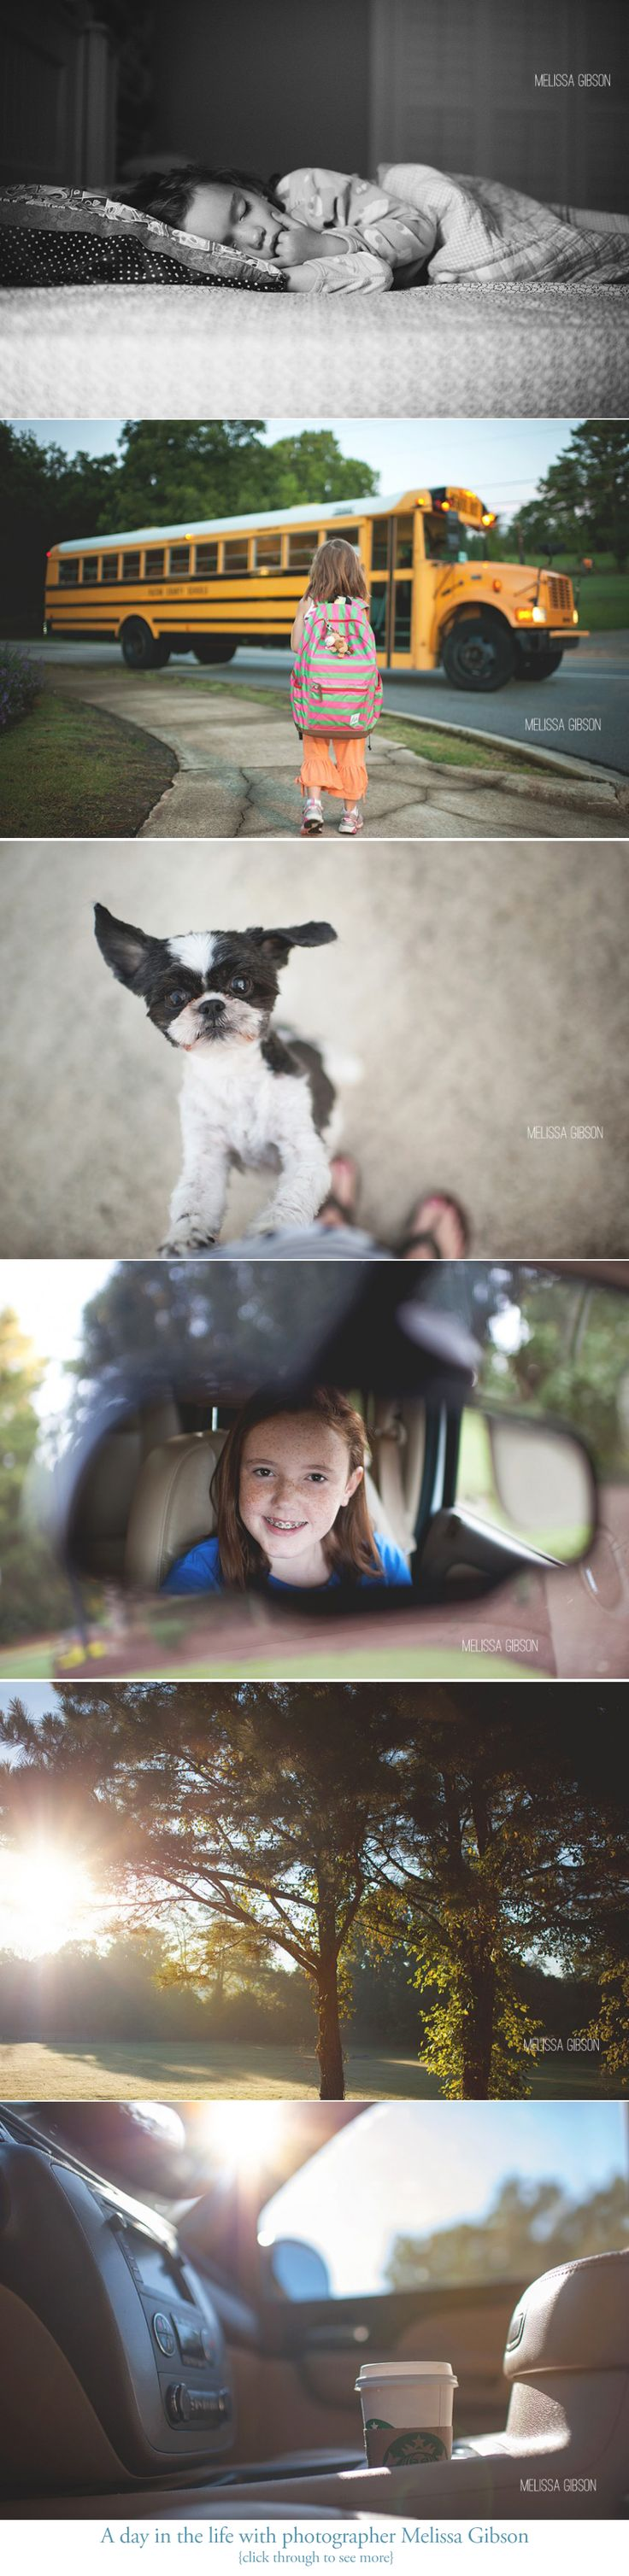 A day in the life with photographer Melissa Gibson